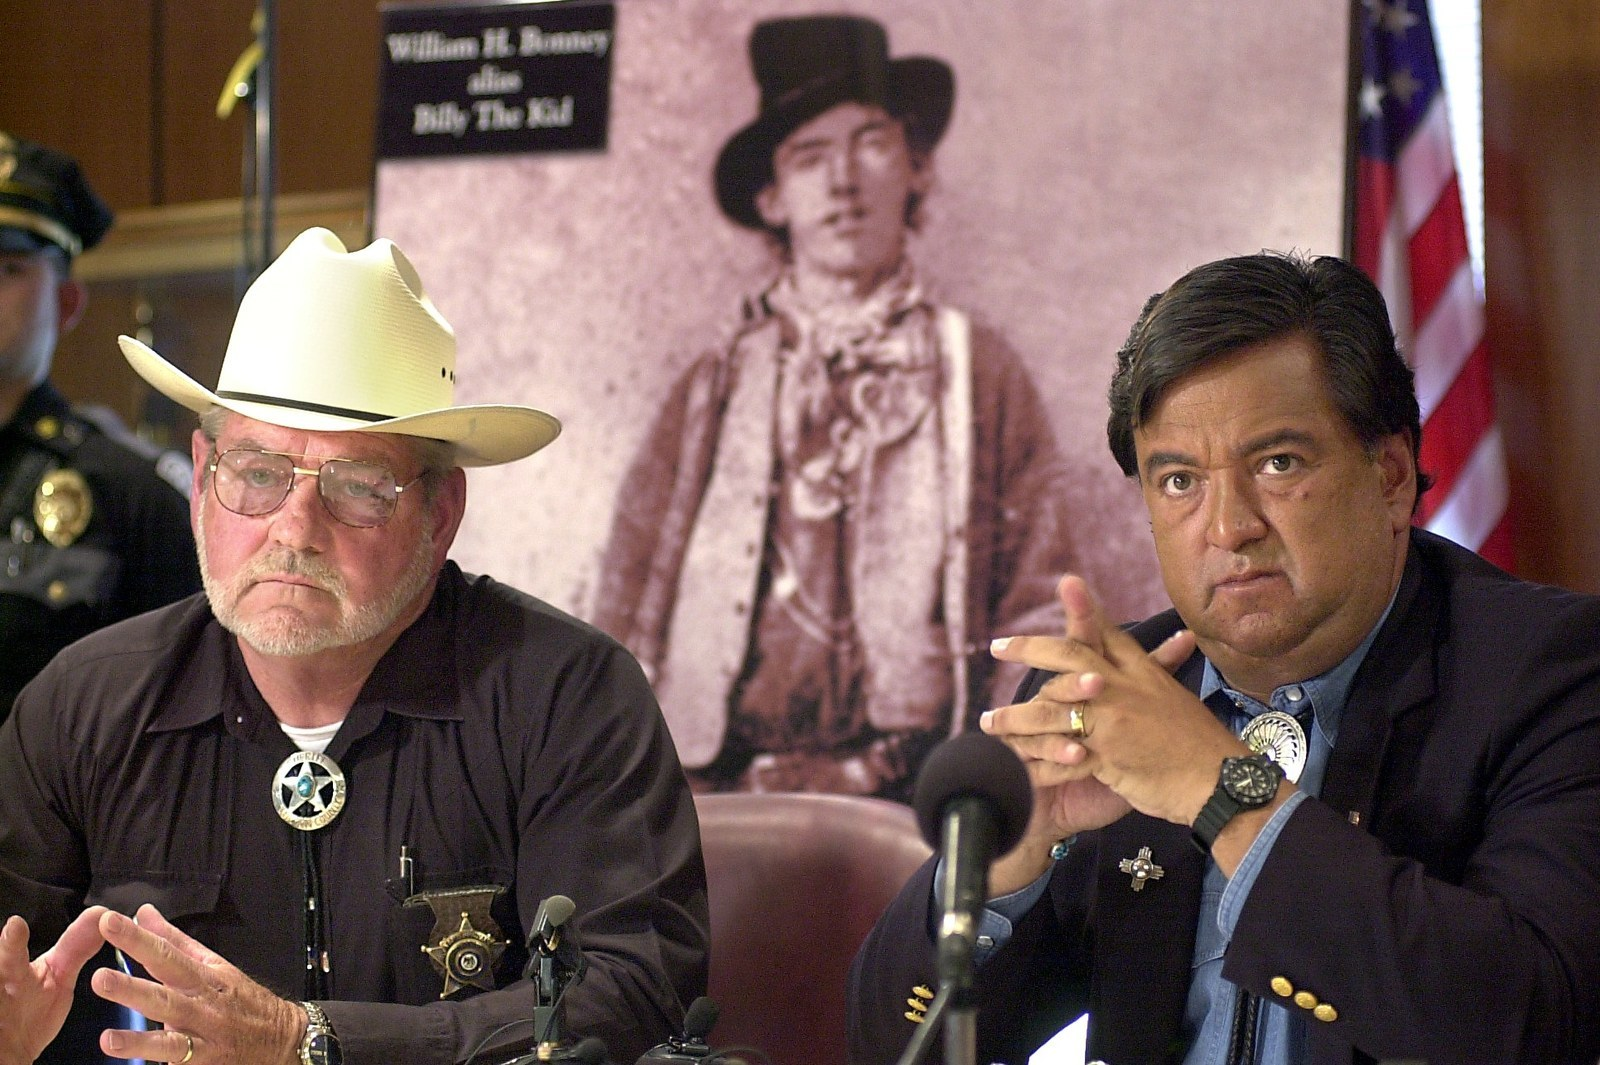 How The West Was Wrong: Digging Up The Bones Of Billy The Kid